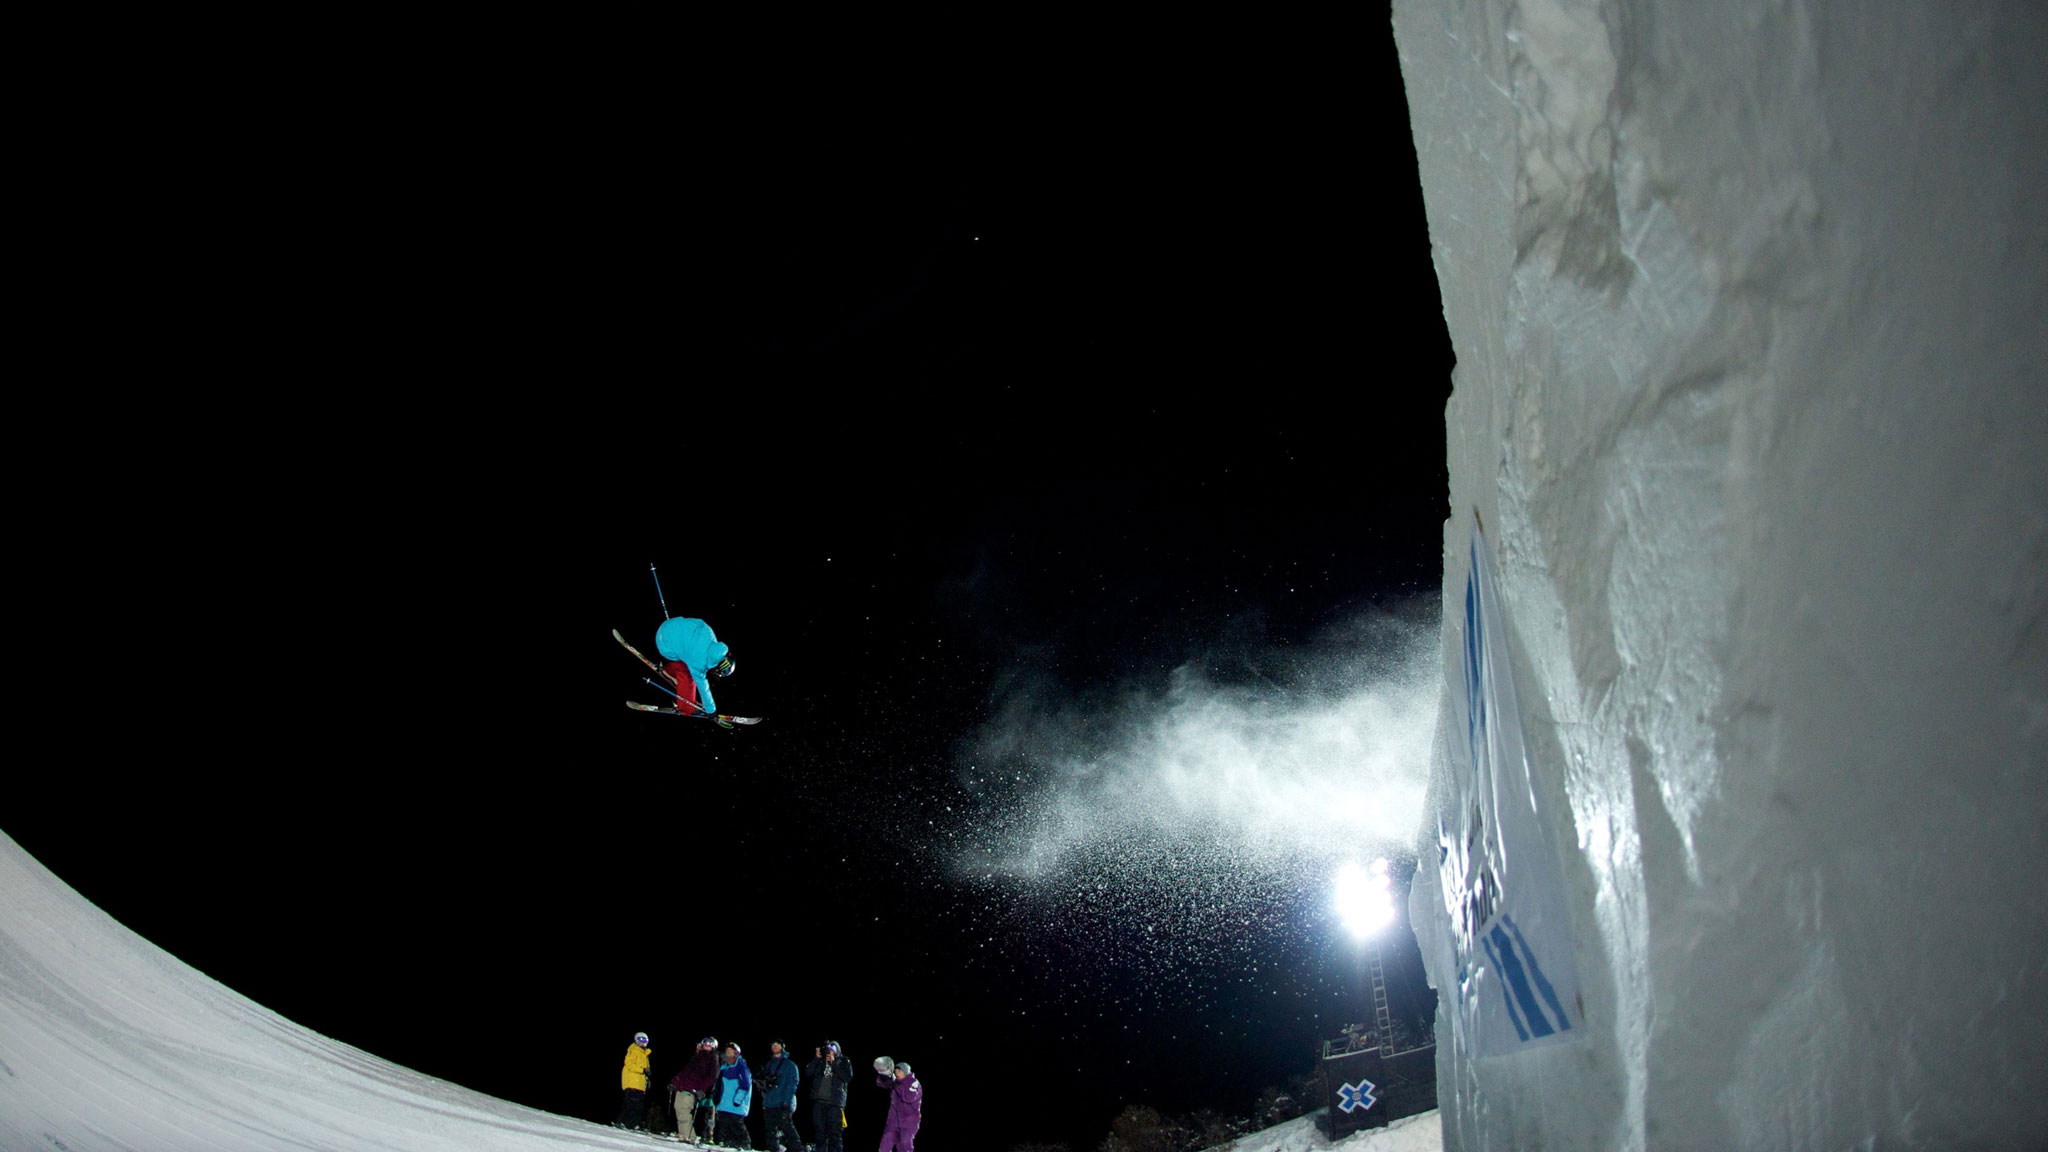 Alex Schlopy will be competing in Slopestyle and Big Air at X Games Aspen 2014.